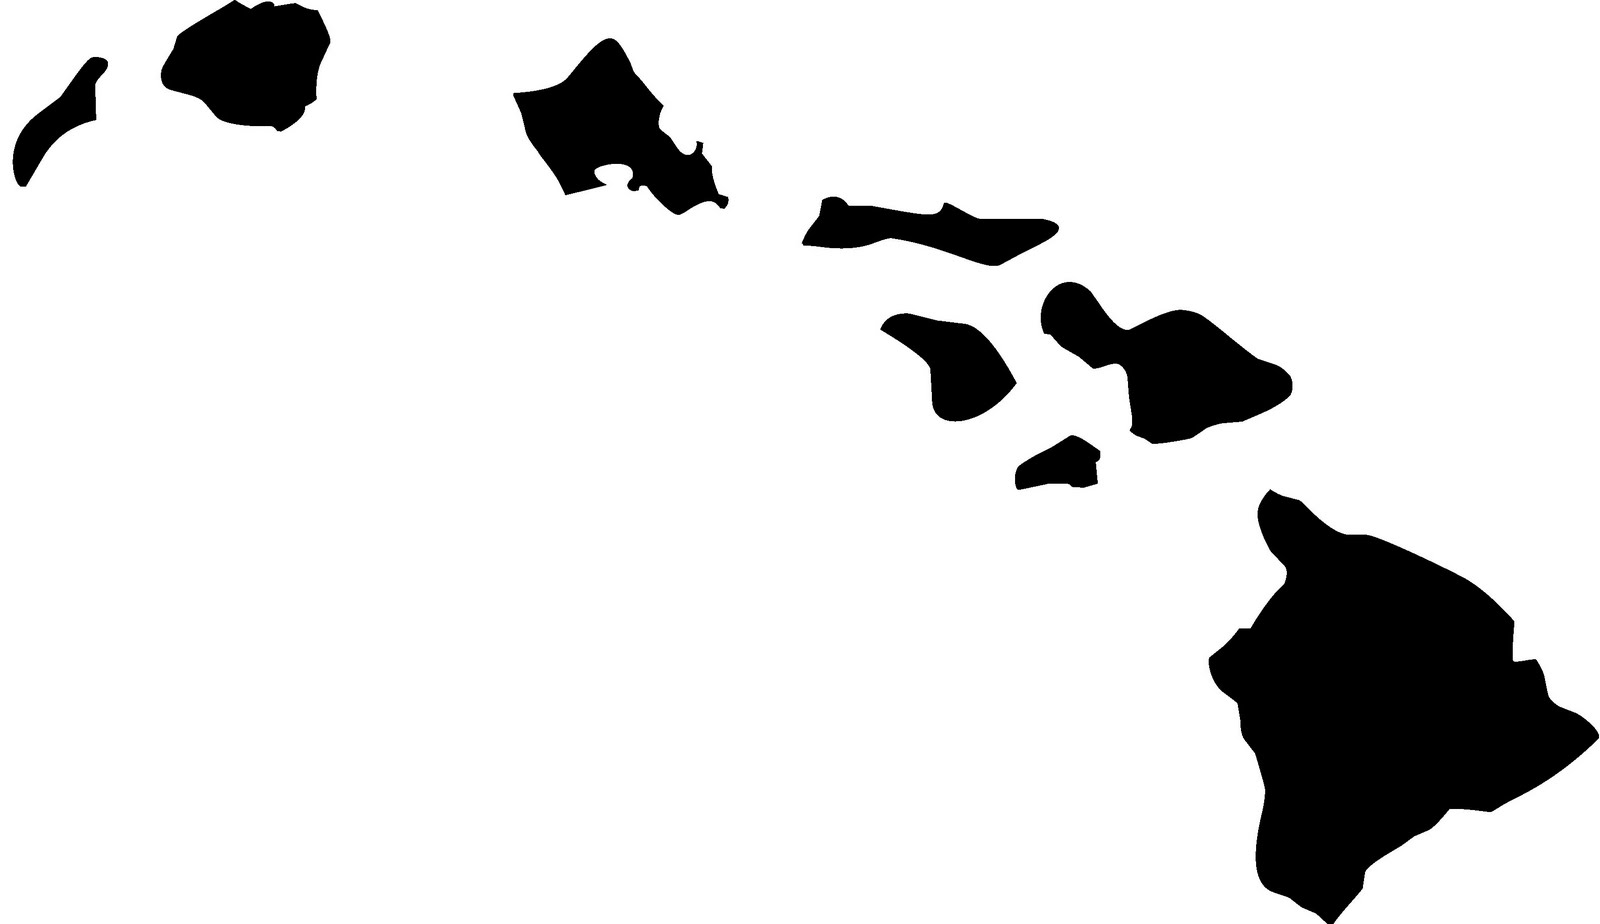 12 Map Of Hawaiian Islands Vector Images